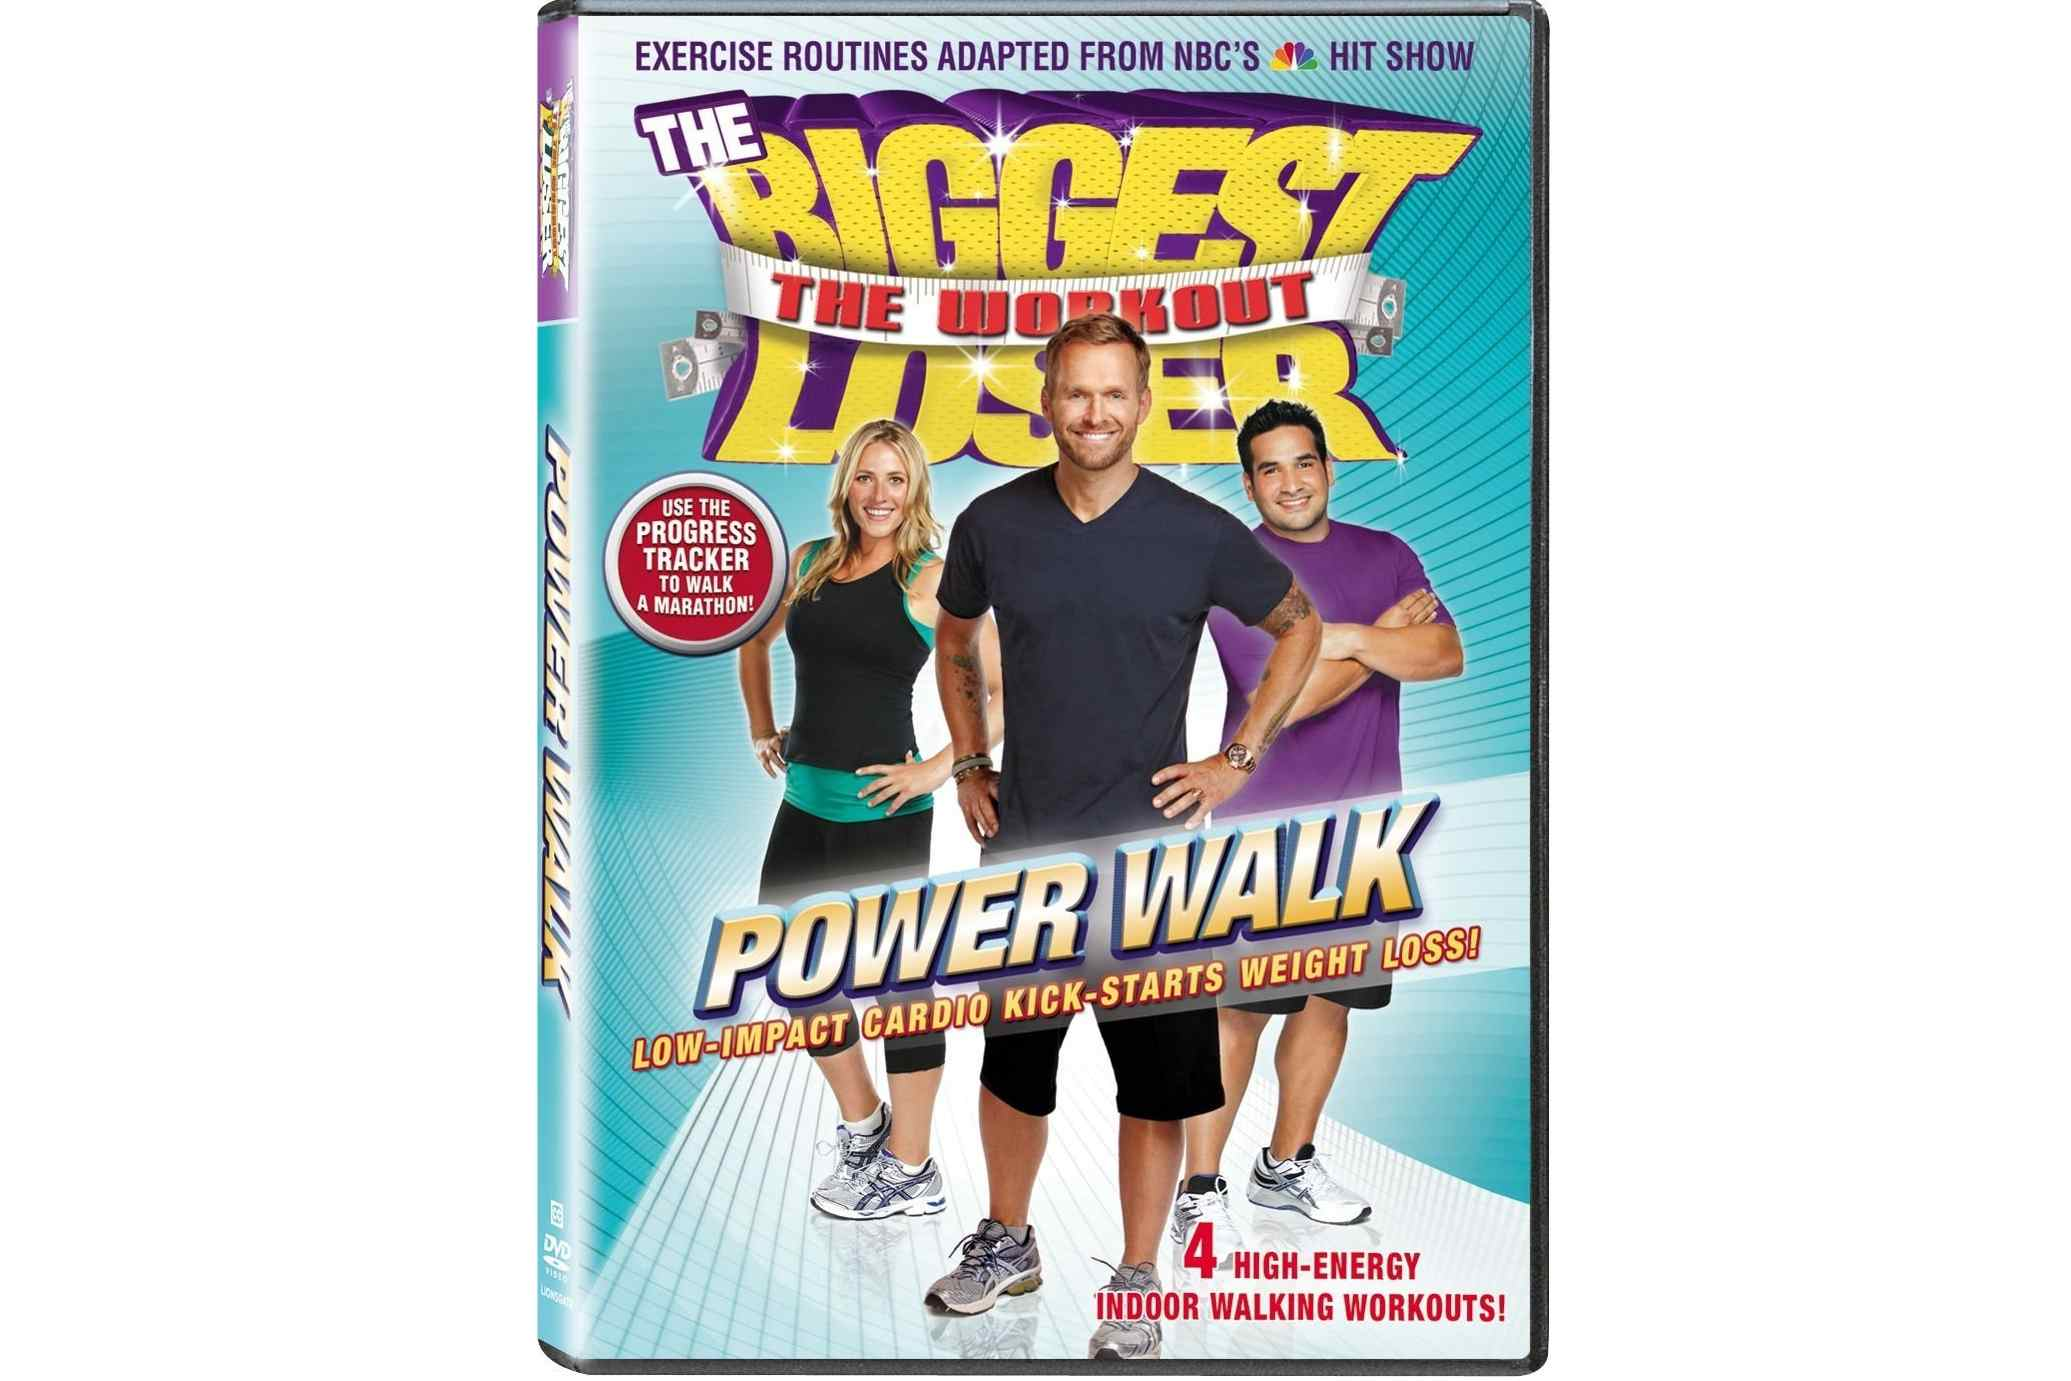 The 19 Best Walking Videos And Dvds To Buy In 2018 Video This Walks You Through Building Circuit Using Biggest Loser Power Walk